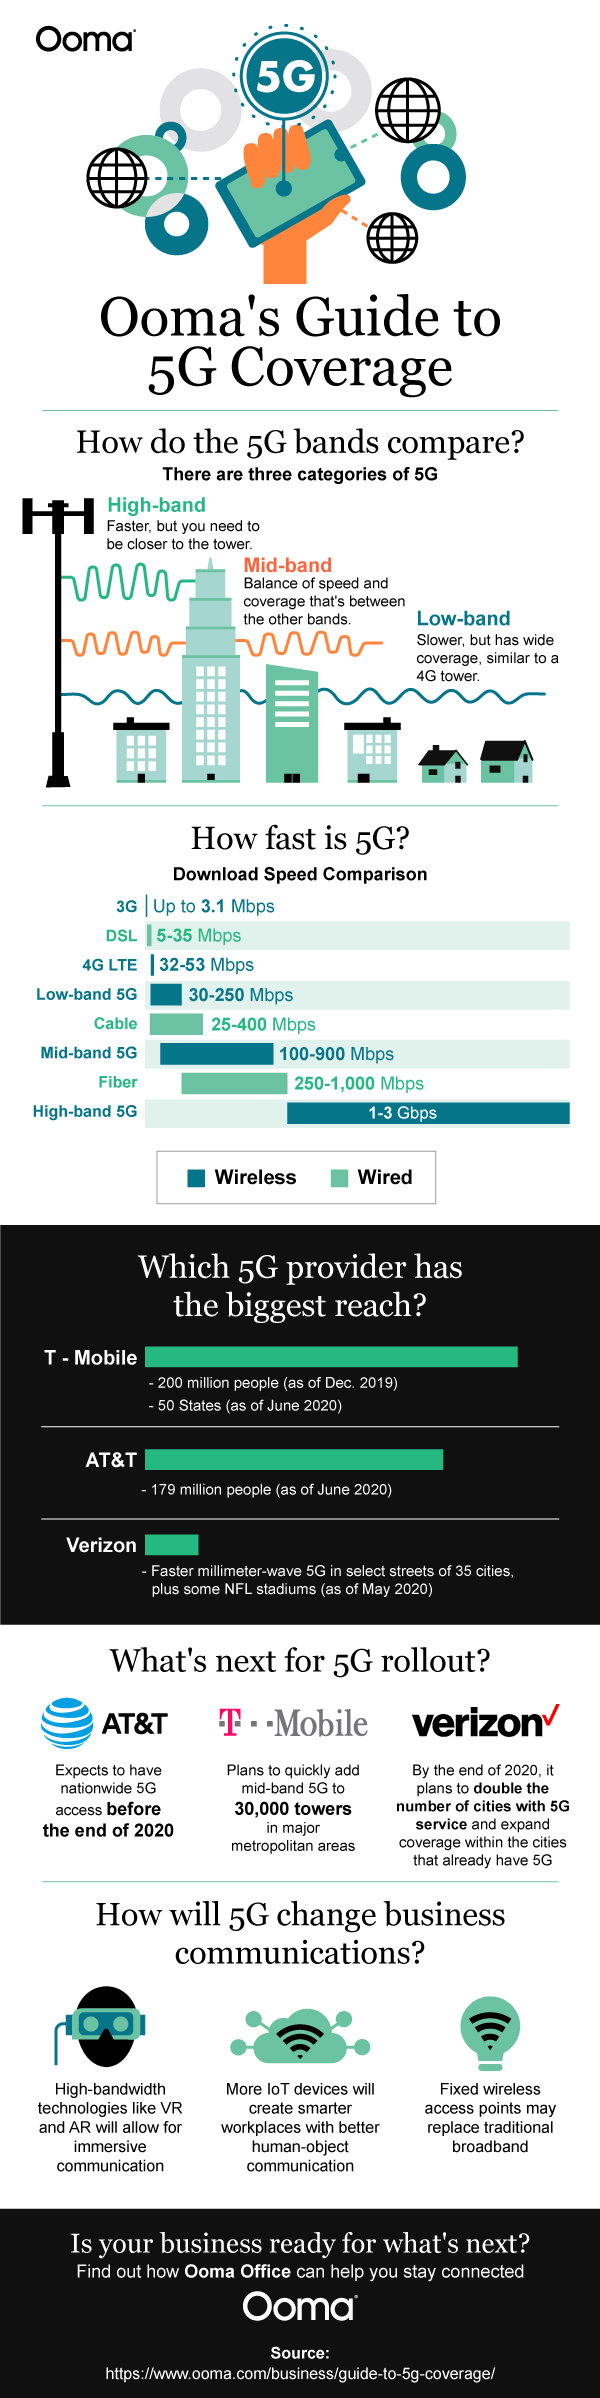 5G coverage and projections